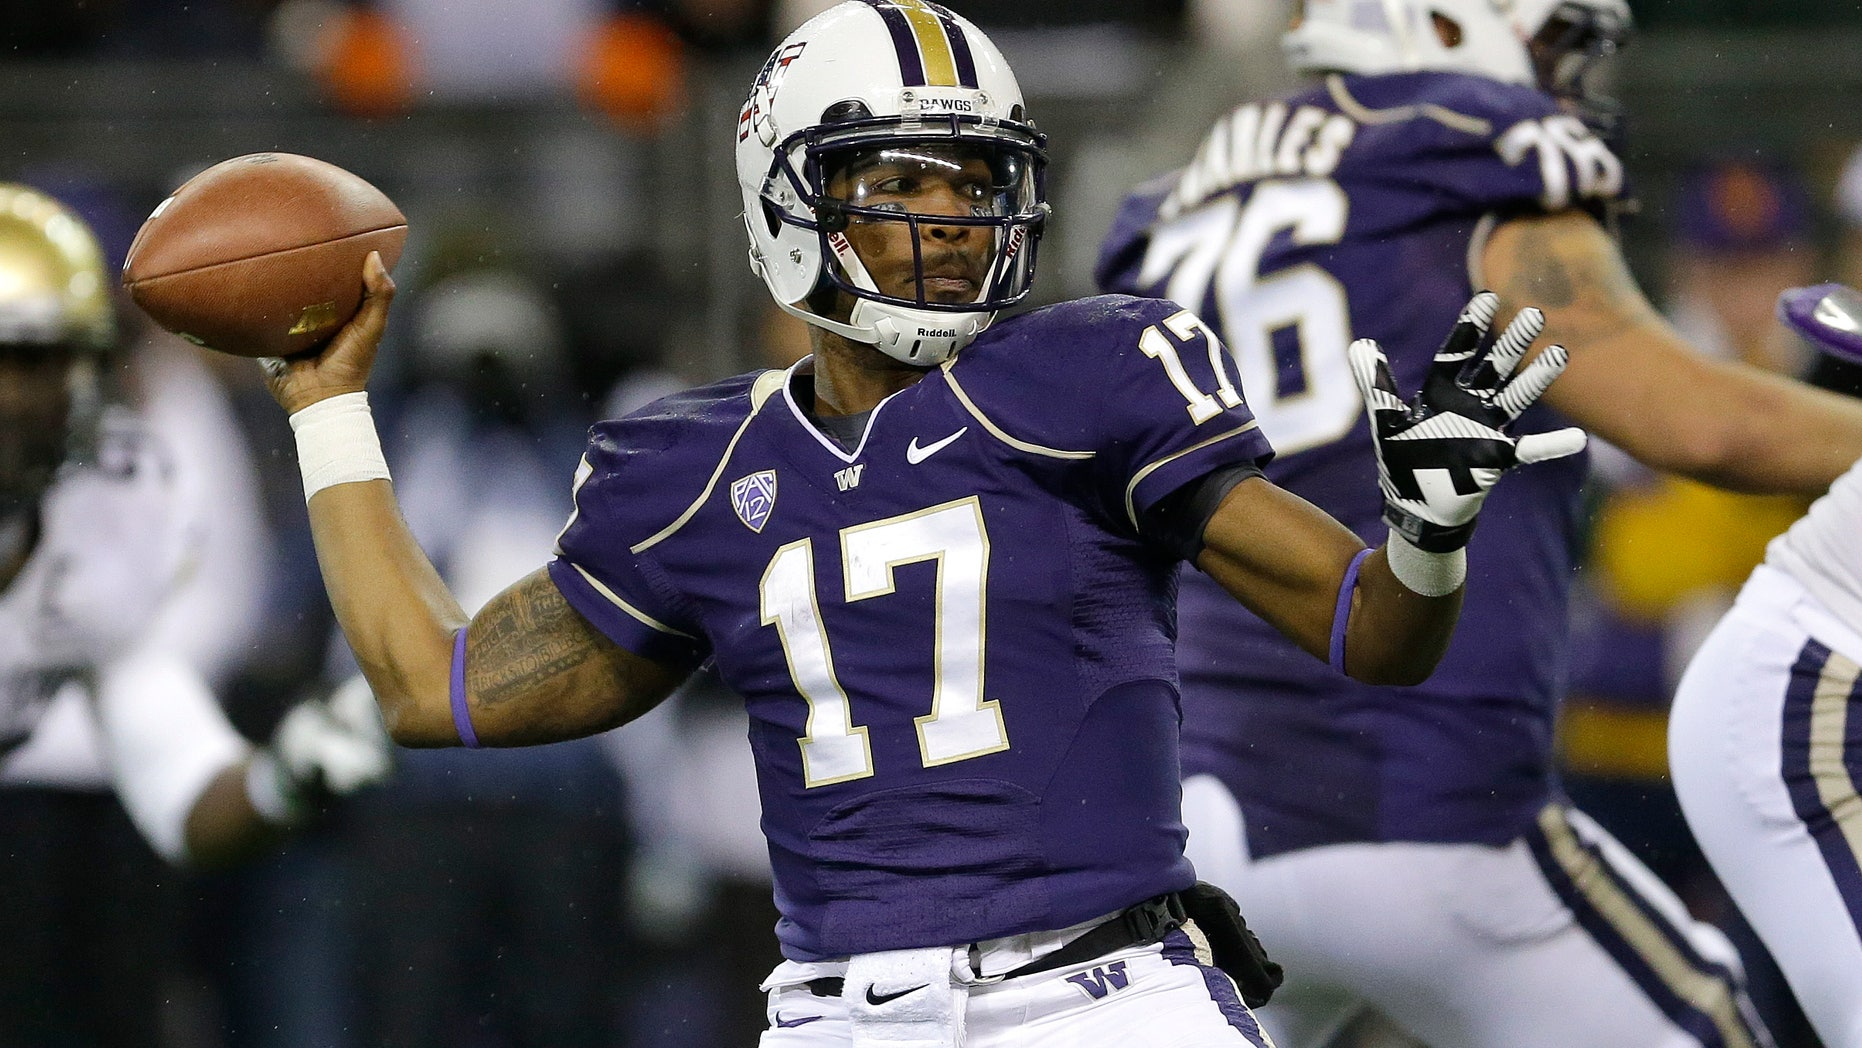 Washington quarterback Keith Price (17) passes against Colorado in the first half of an NCAA college football game on Saturday, Nov. 9, 2013, in Seattle. (AP Photo/Ted S. Warren)